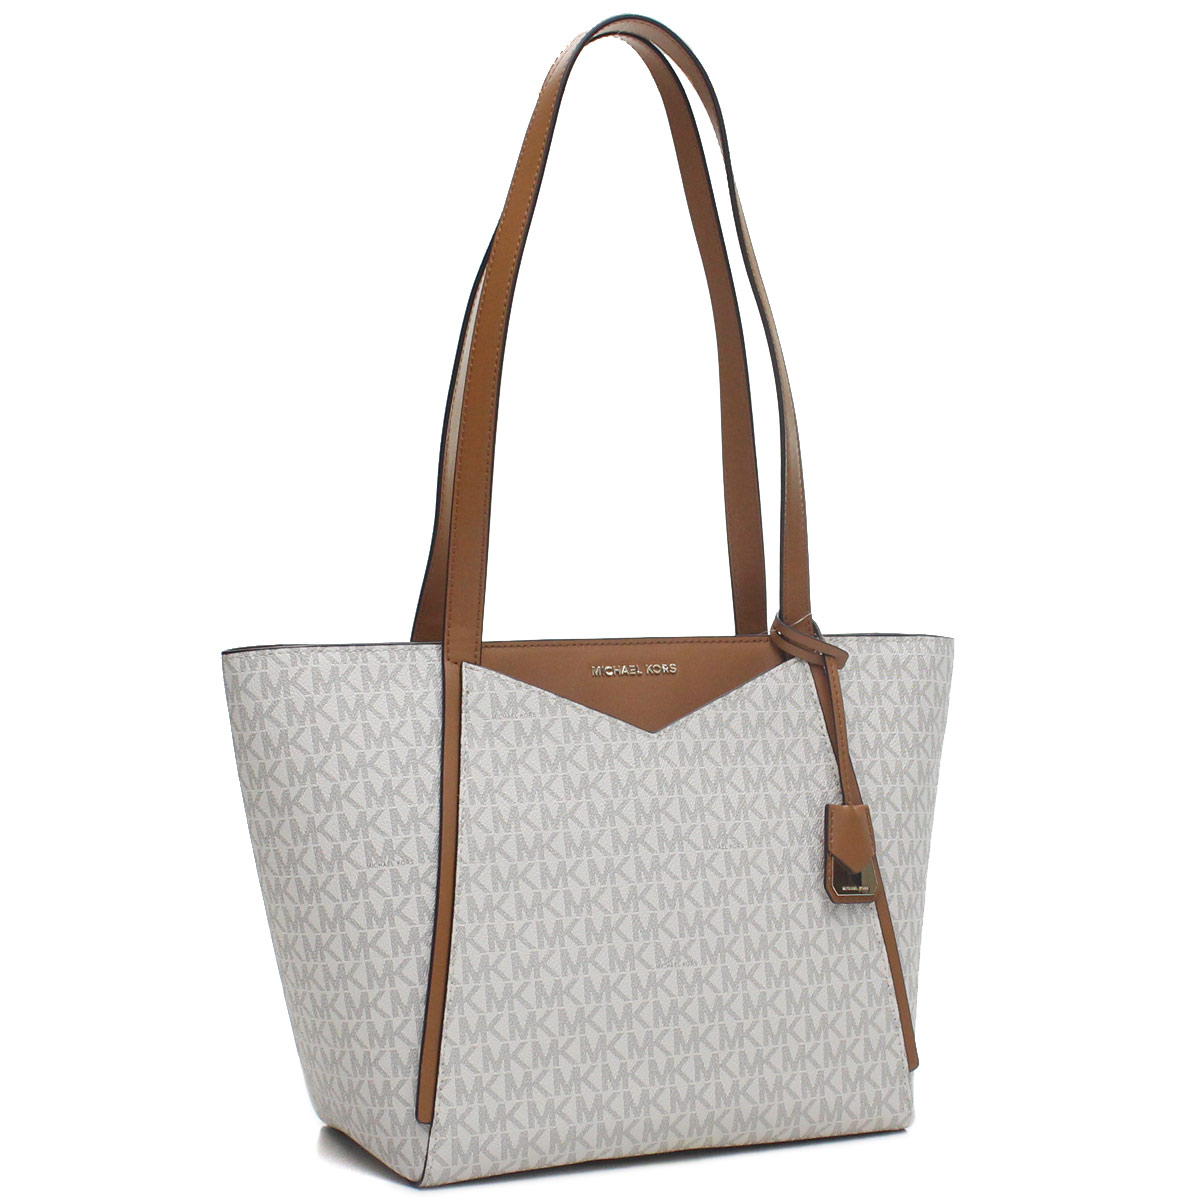 458fb9e3bd Bighit The total brand wholesale  Michael Kors MICHAEL KORS M TOTE GROUPE tote  bag 30S8GN1T1B VANILLA white system brown system